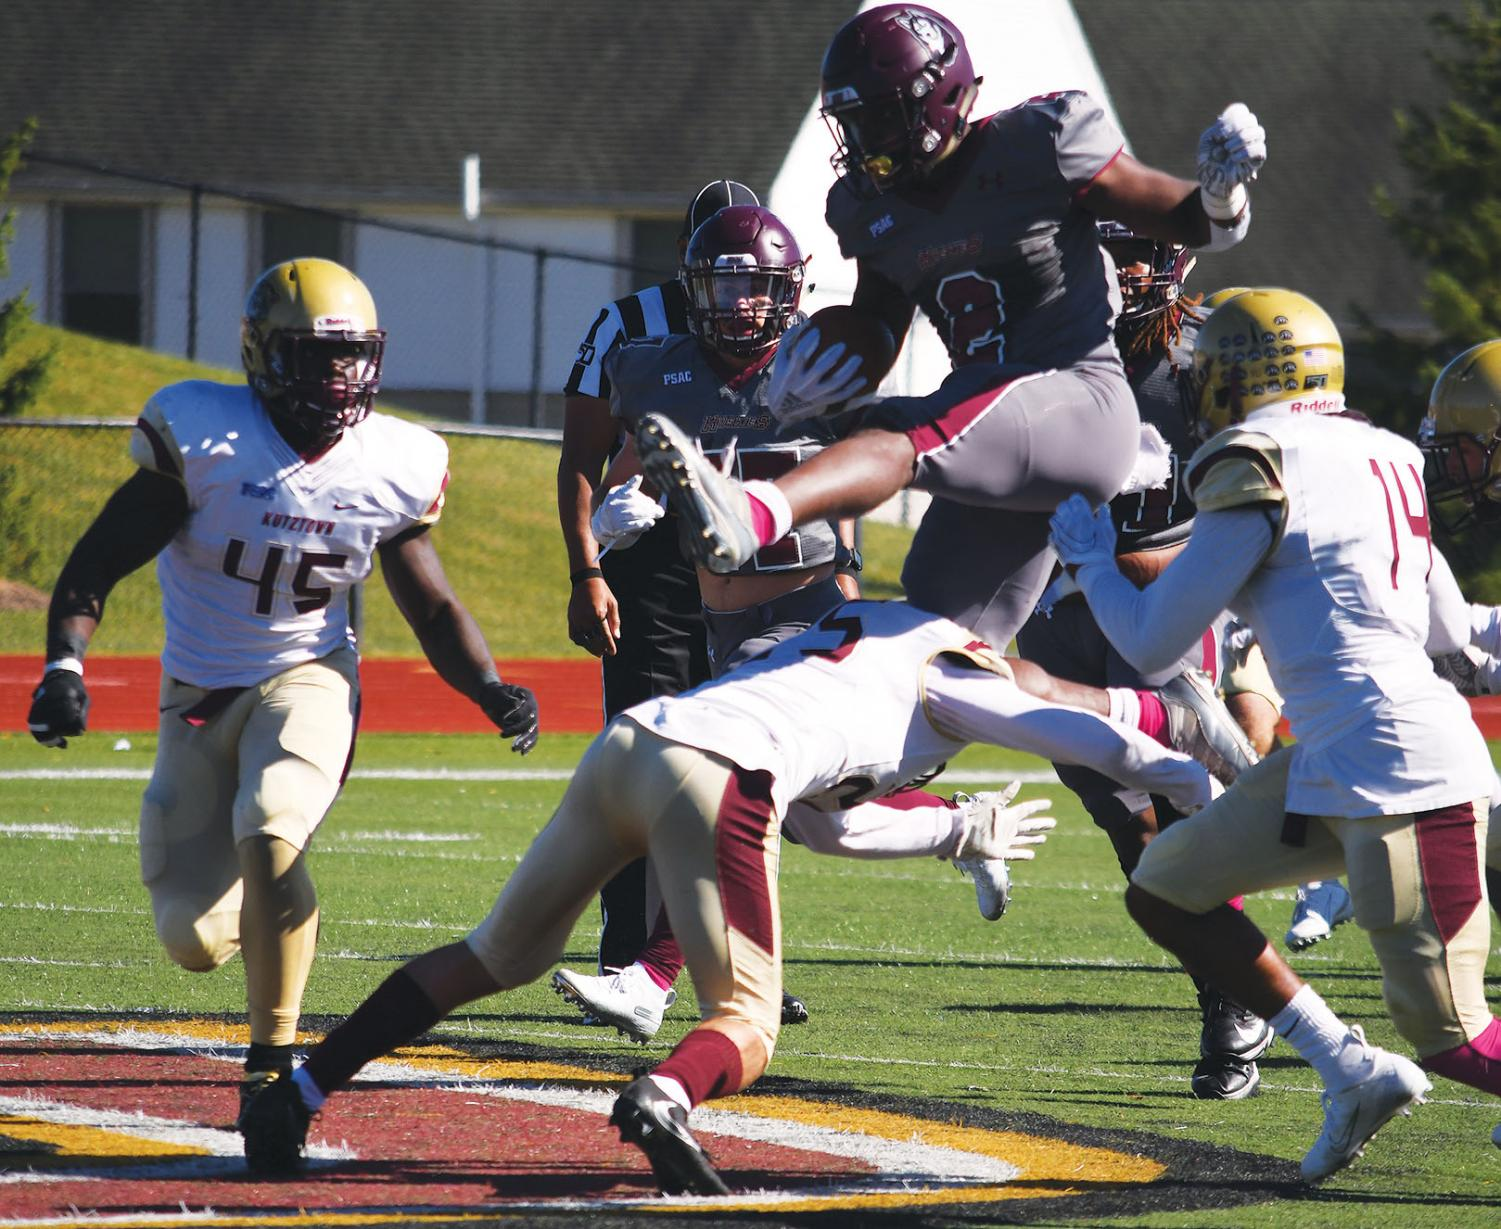 Redshirt junior running back Nyfeast West (pictured above) hurdles the Kutztown defender in the Huskies last game against the Golden Bears this past Saturday.